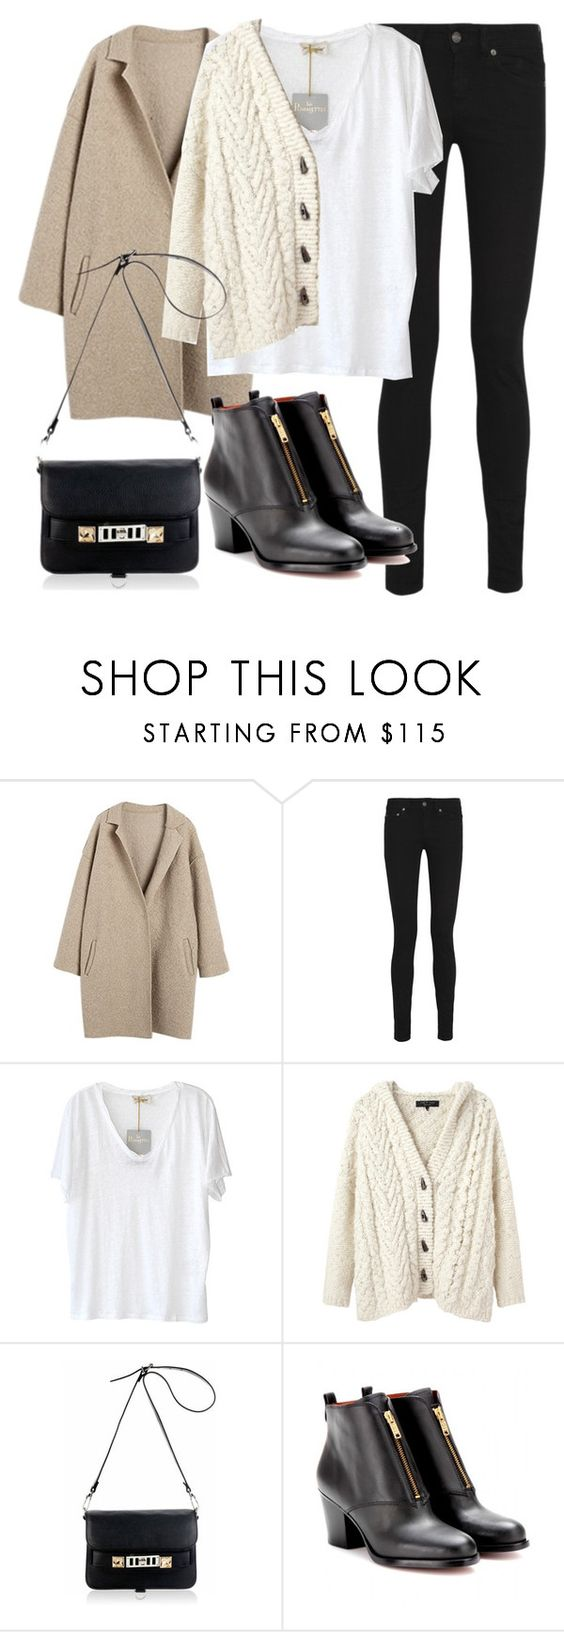 """Untitled #12296"" by florencia95 ❤ liked on Polyvore featuring Yves Saint Laurent, American Vintage, rag & bone, Proenza Schouler and Marc by Marc Jacobs"